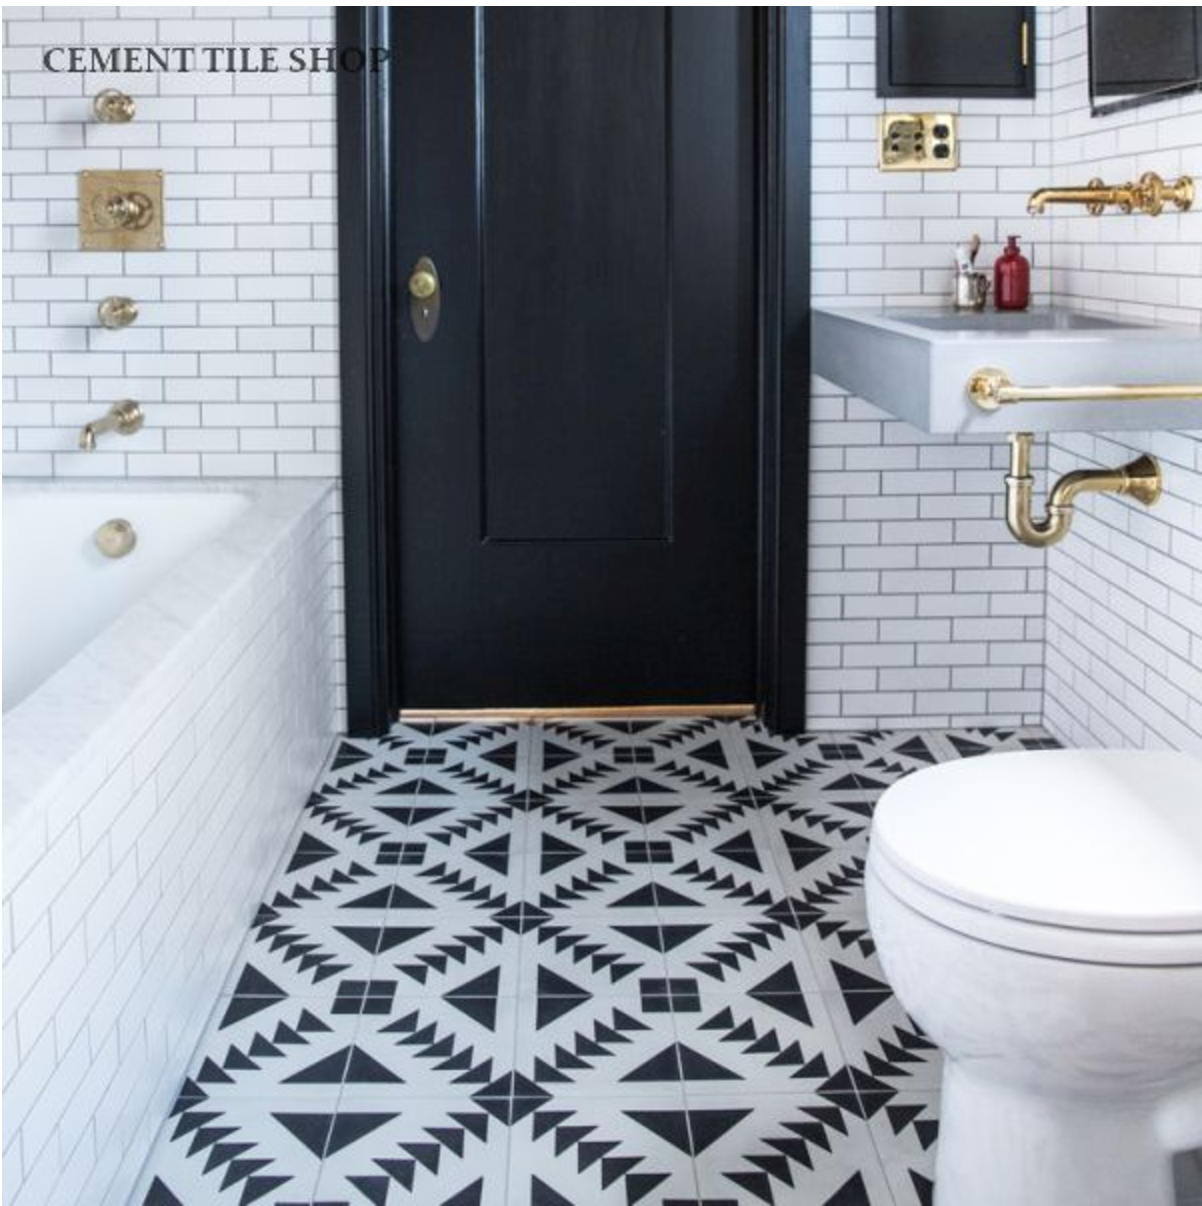 New and Noteworthy: The Cement Tile Shop, Tampa FL - Studio M Blog ...